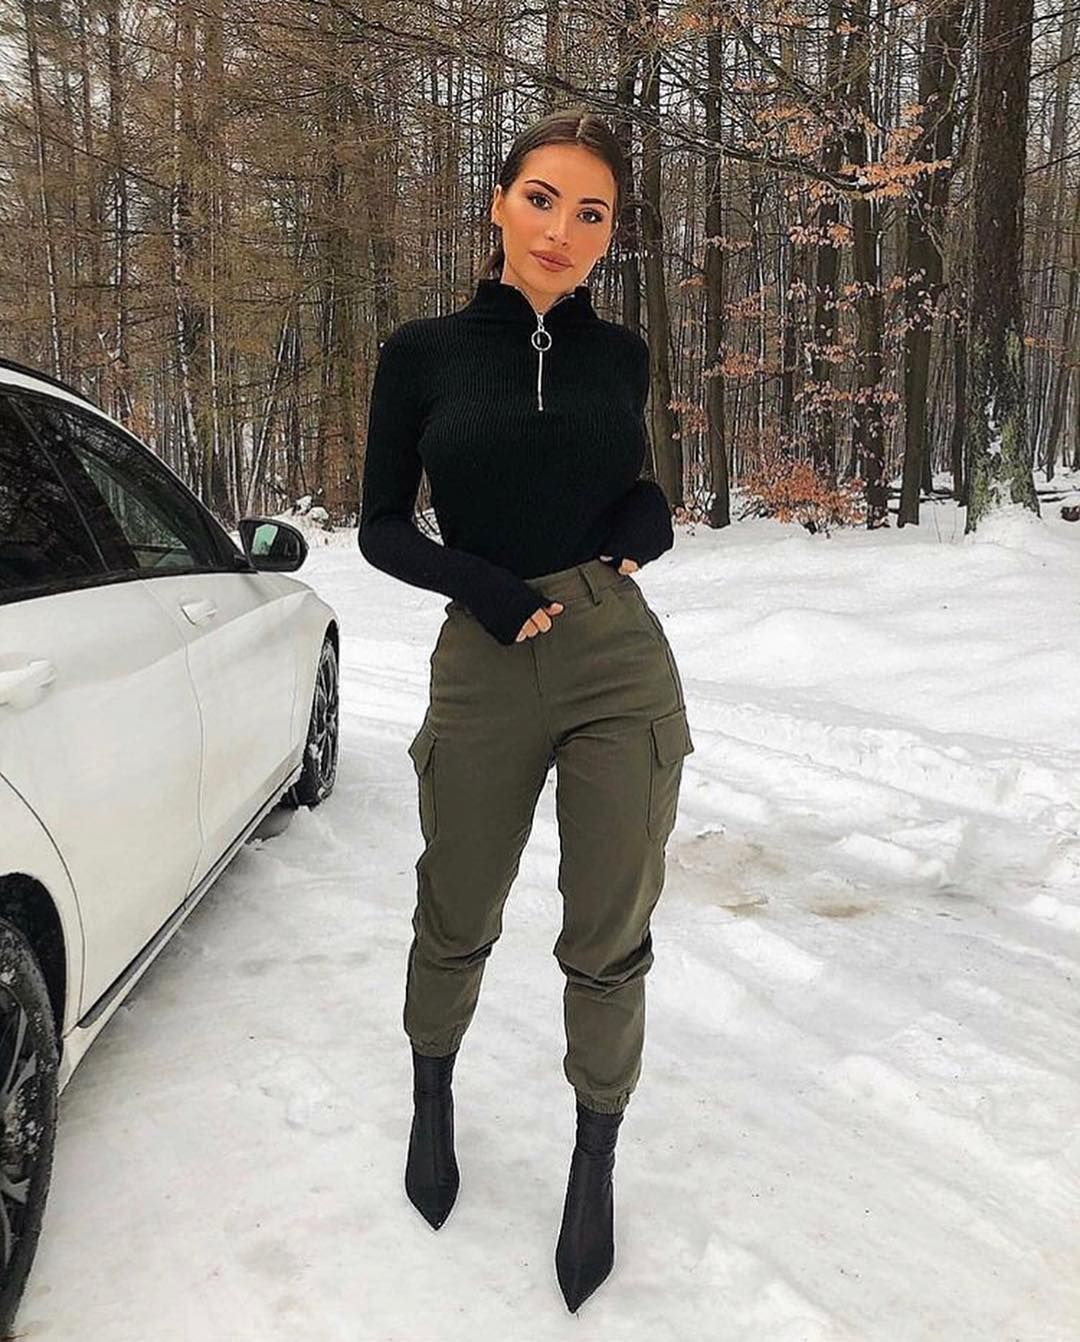 """Fashion on Instagram """"15 😍  Follow @suavefashion   for more 💎🤩 @ suavefashion   @ suavefashion   Shopping link in bio 🔥🔥 Tag your friend 🎀 followers follower…"""" is part of Outfits -"""